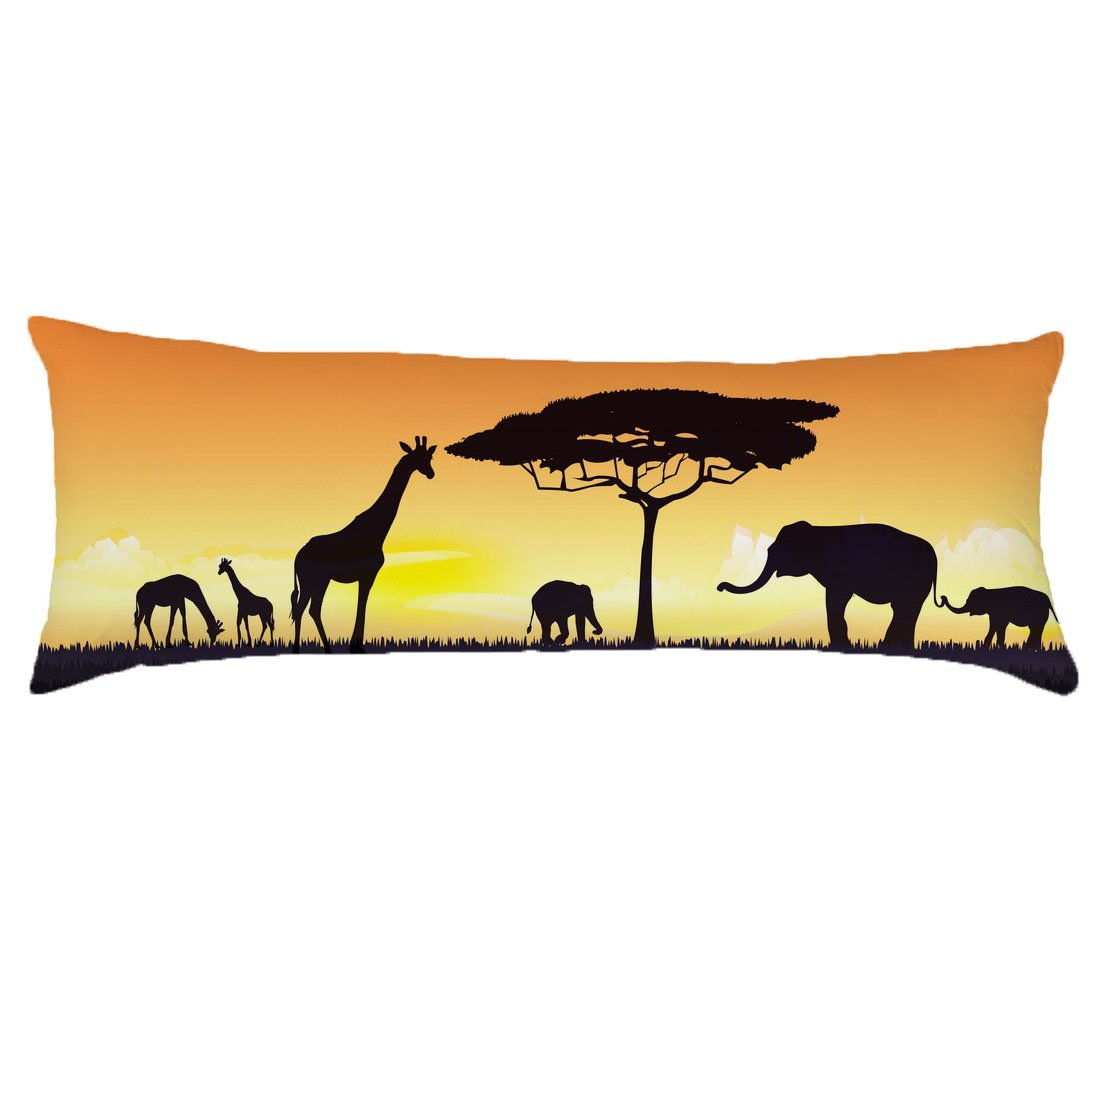 Alicia Haines Home Decorative Pillow Cover cotton Long Body Pillow Case 20x54 inch (The animals under the dusk)